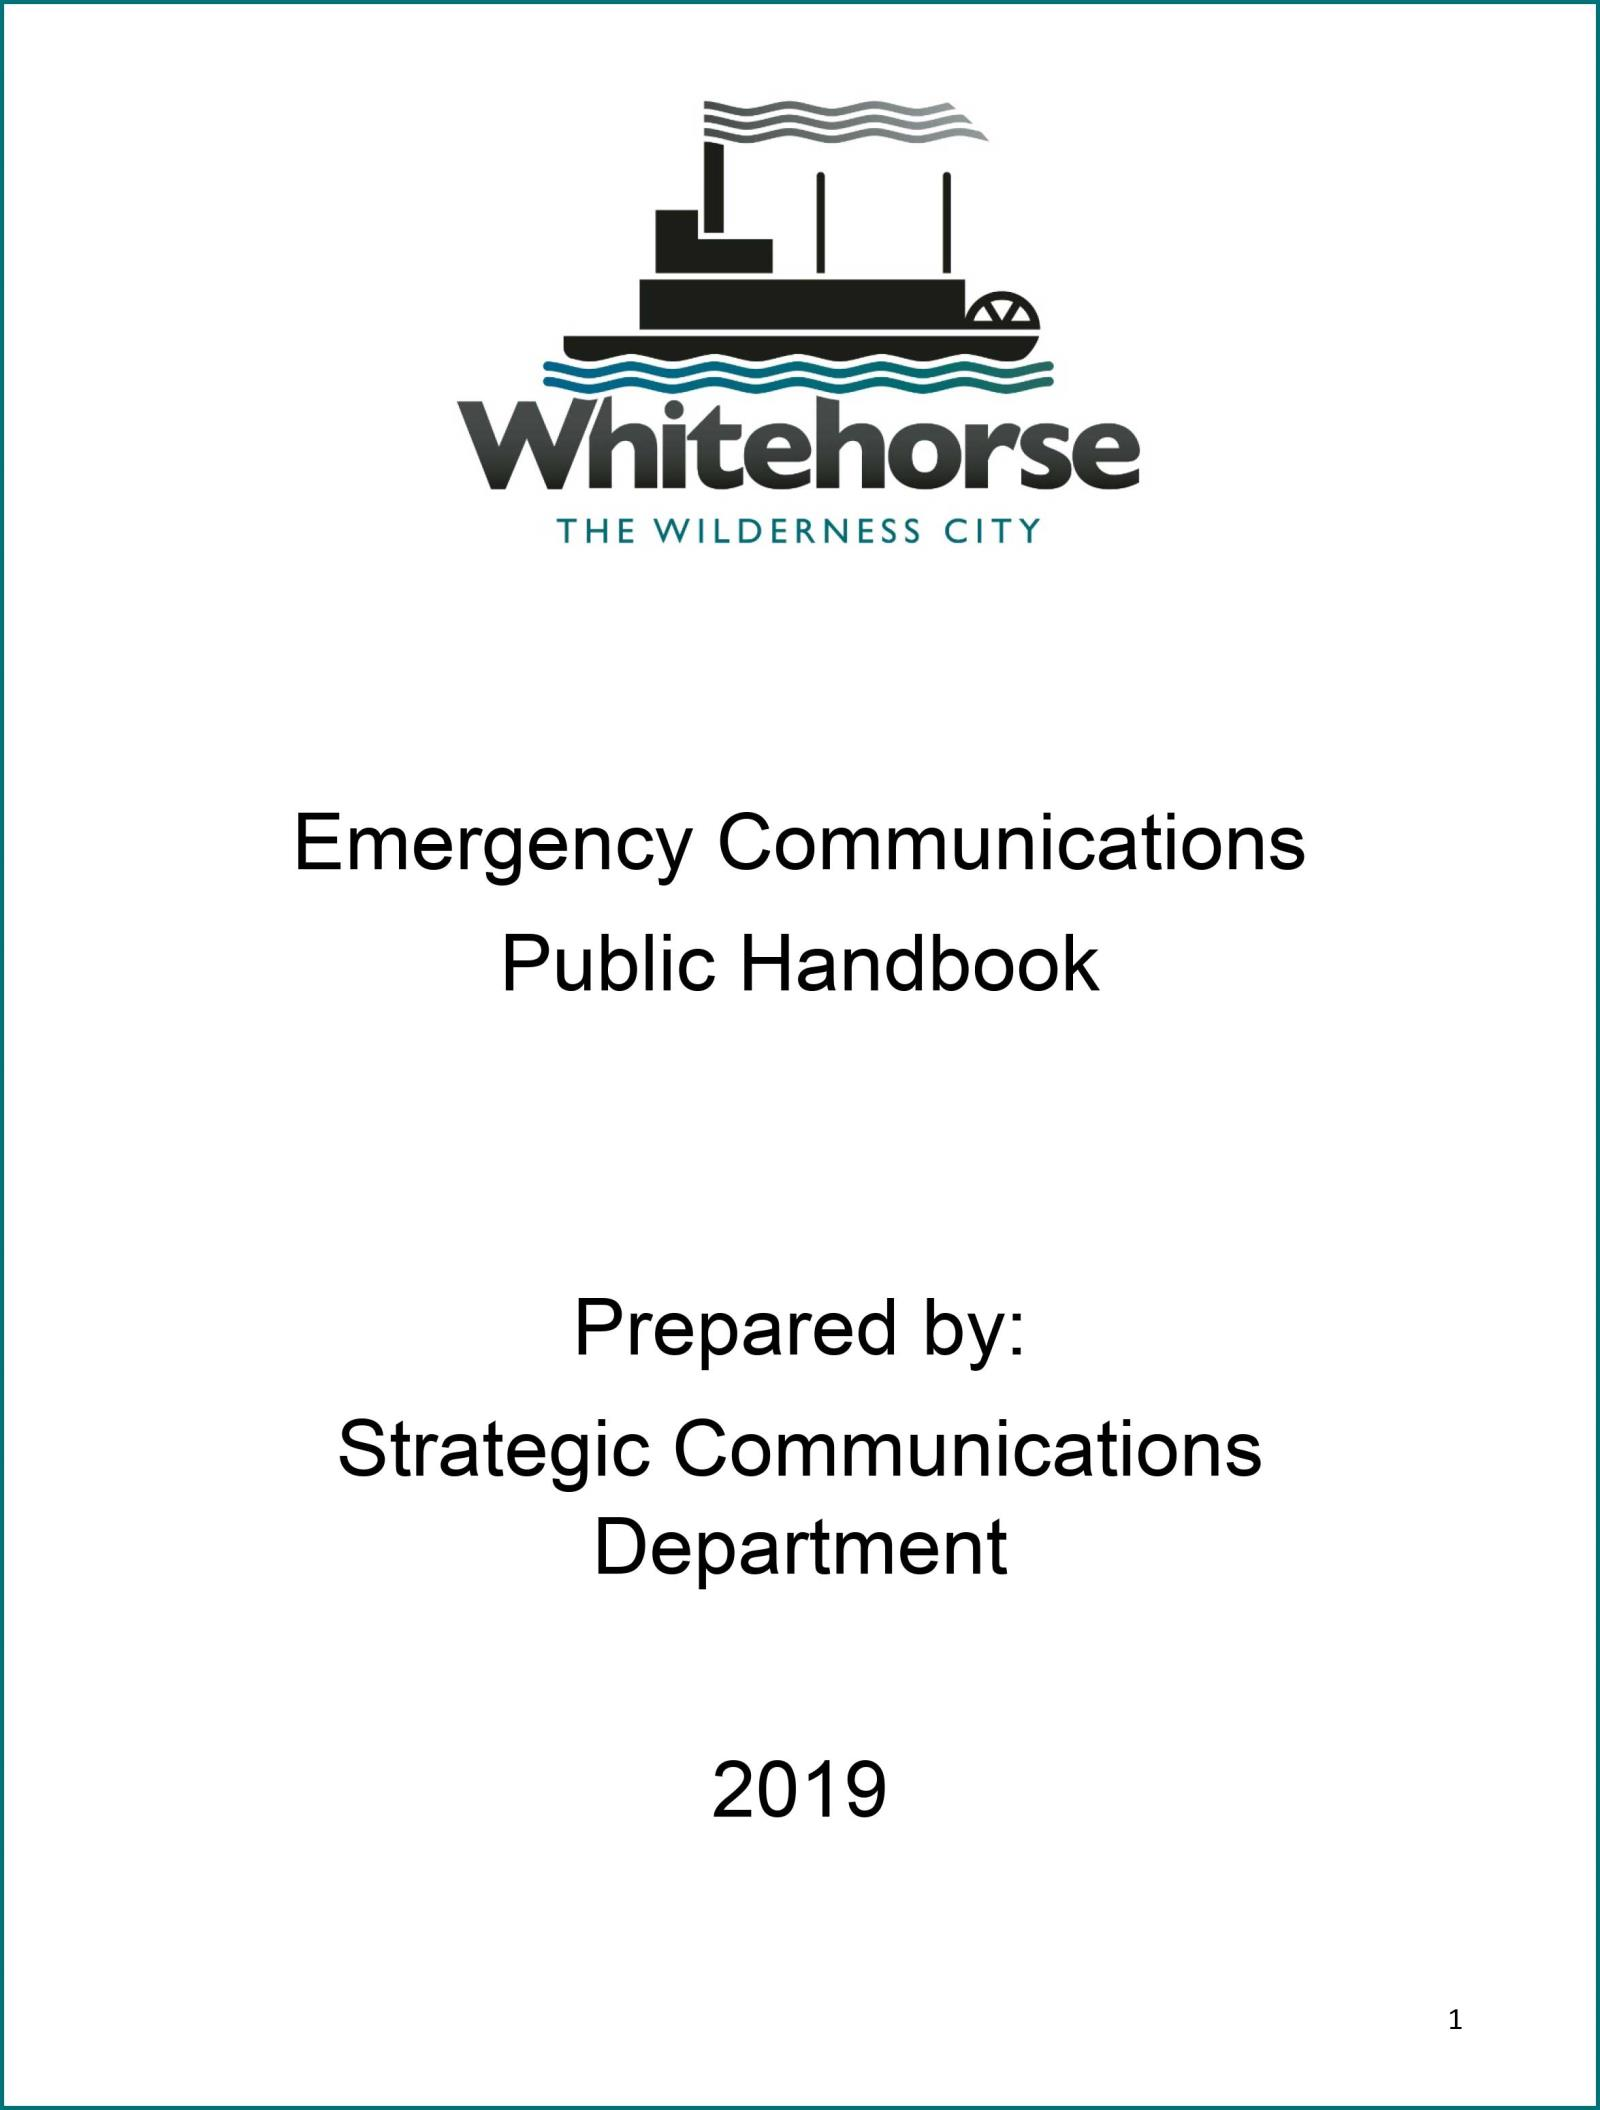 Emergency-Communications-Plan---FINAL-DRAFT-1